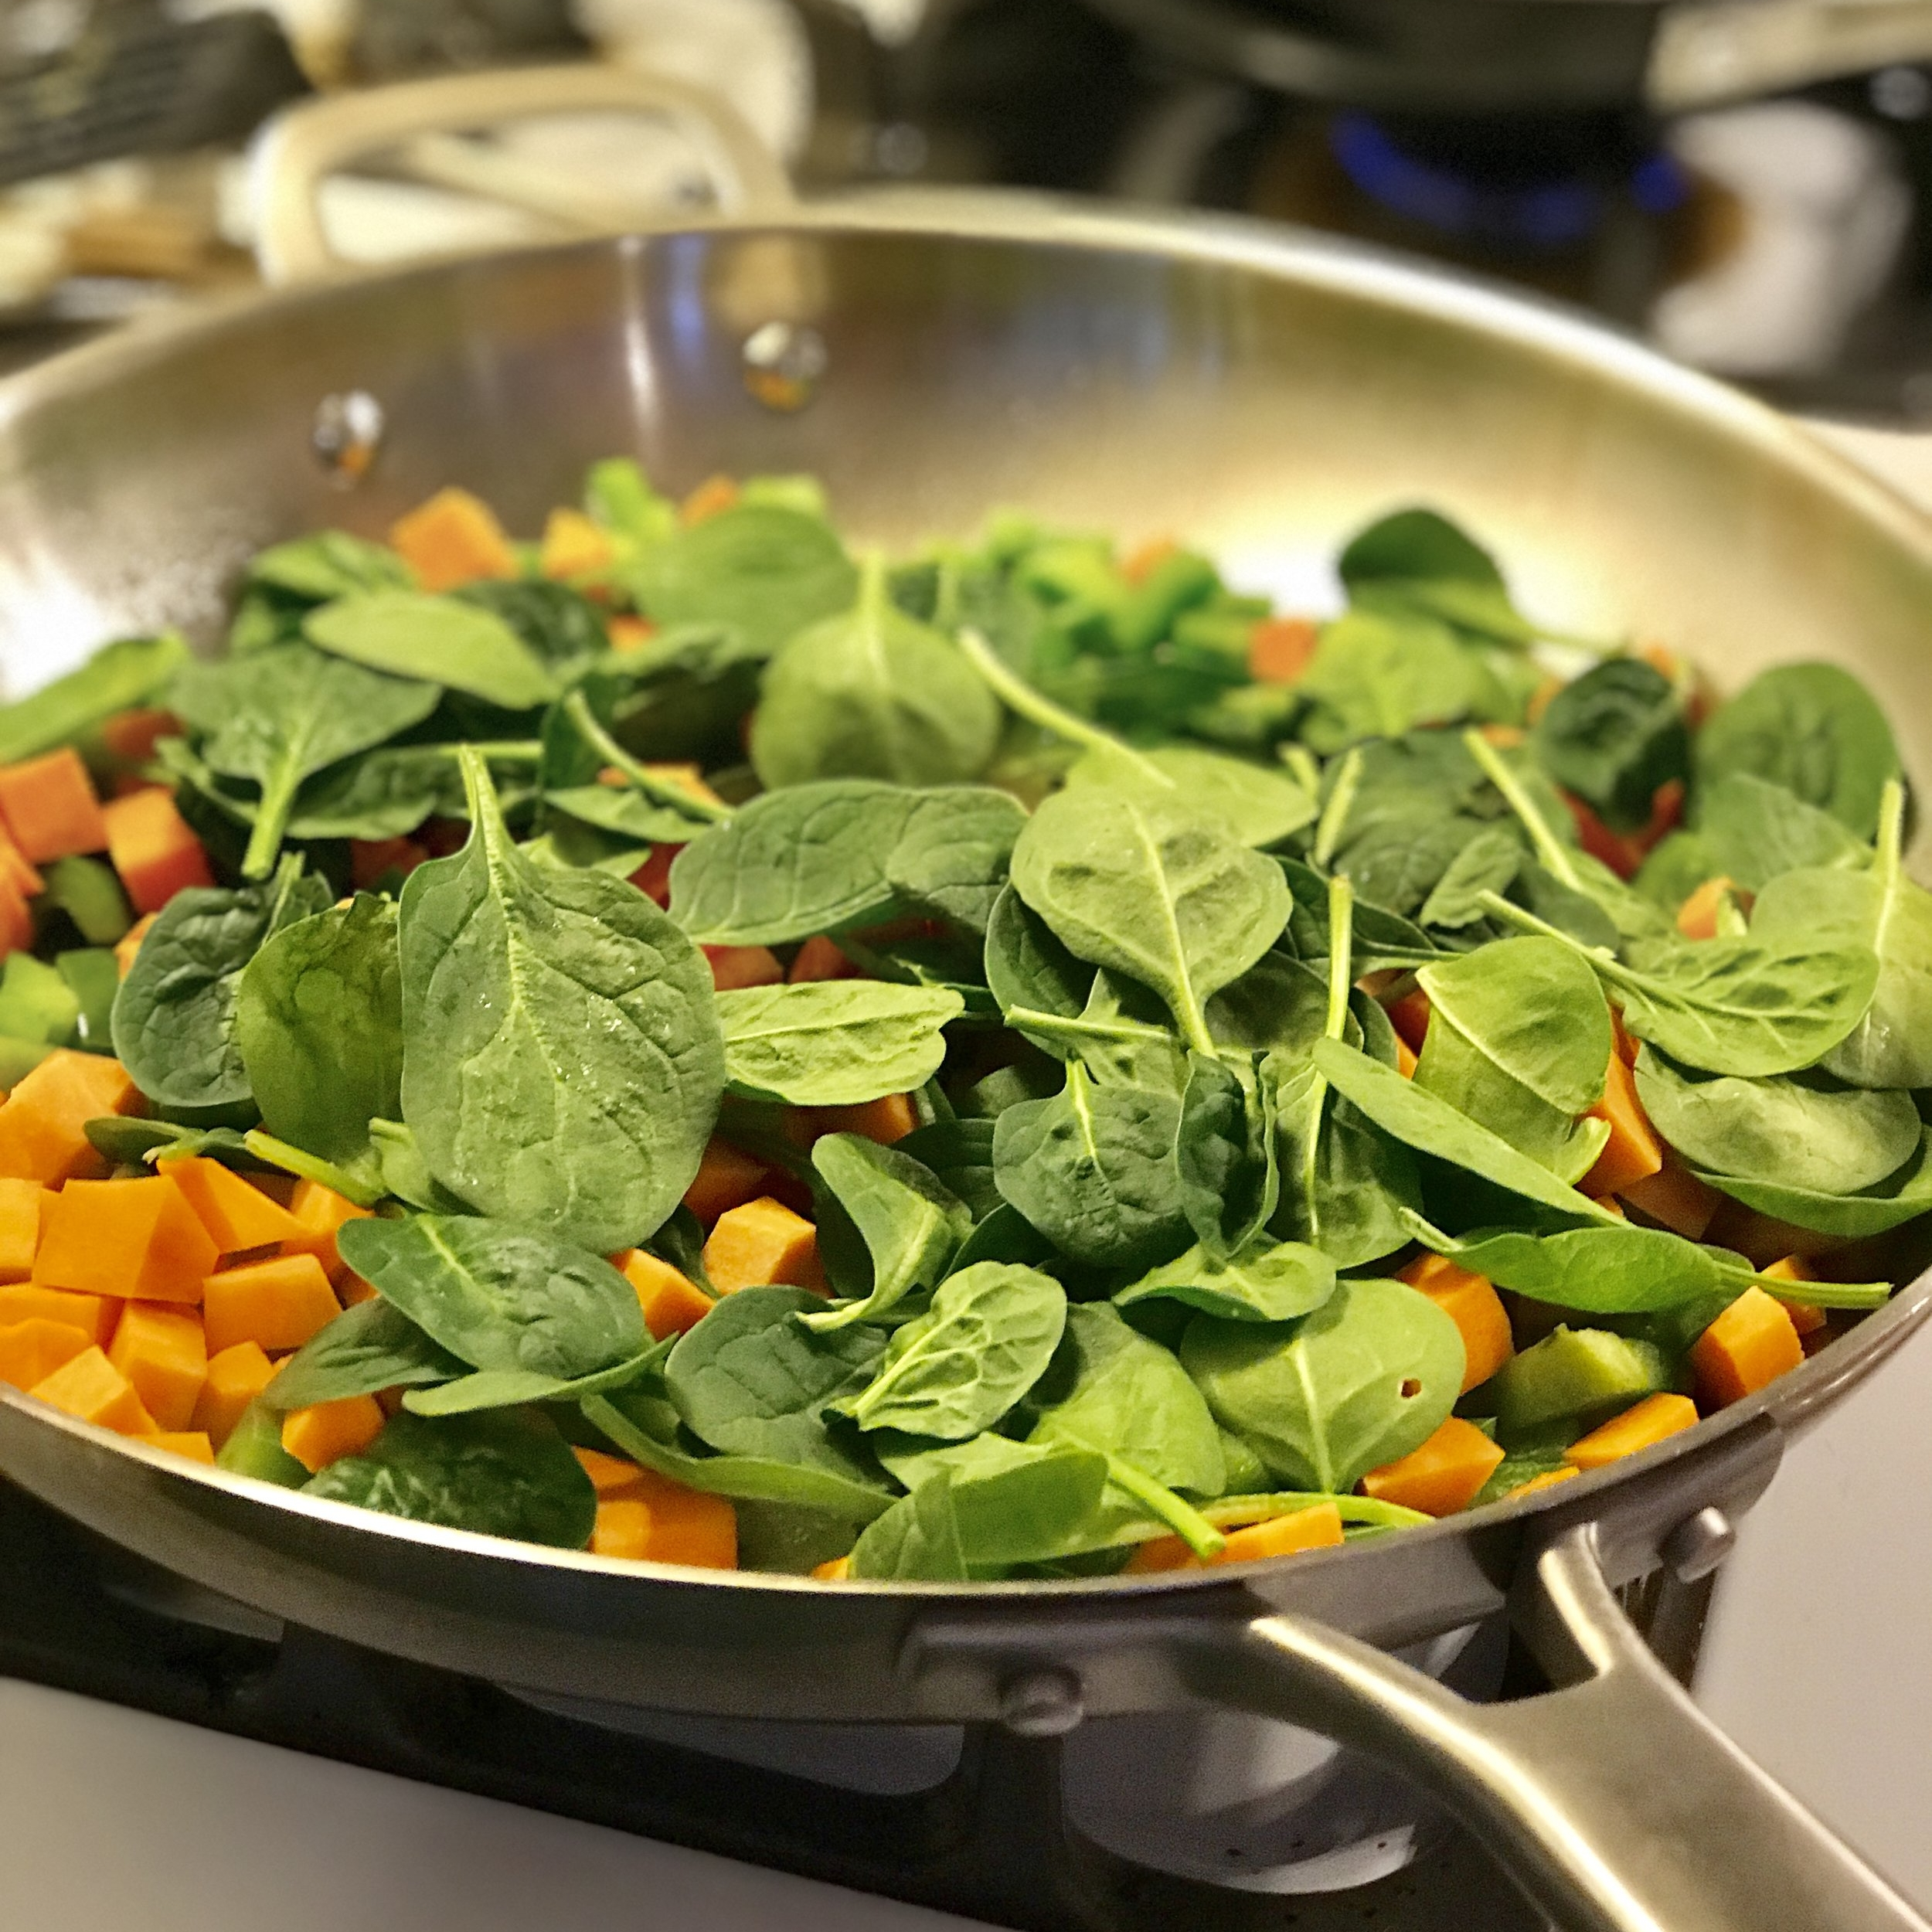 Green Pepper, Sweet Potato and Baby Spinach - sauté for a few minutes